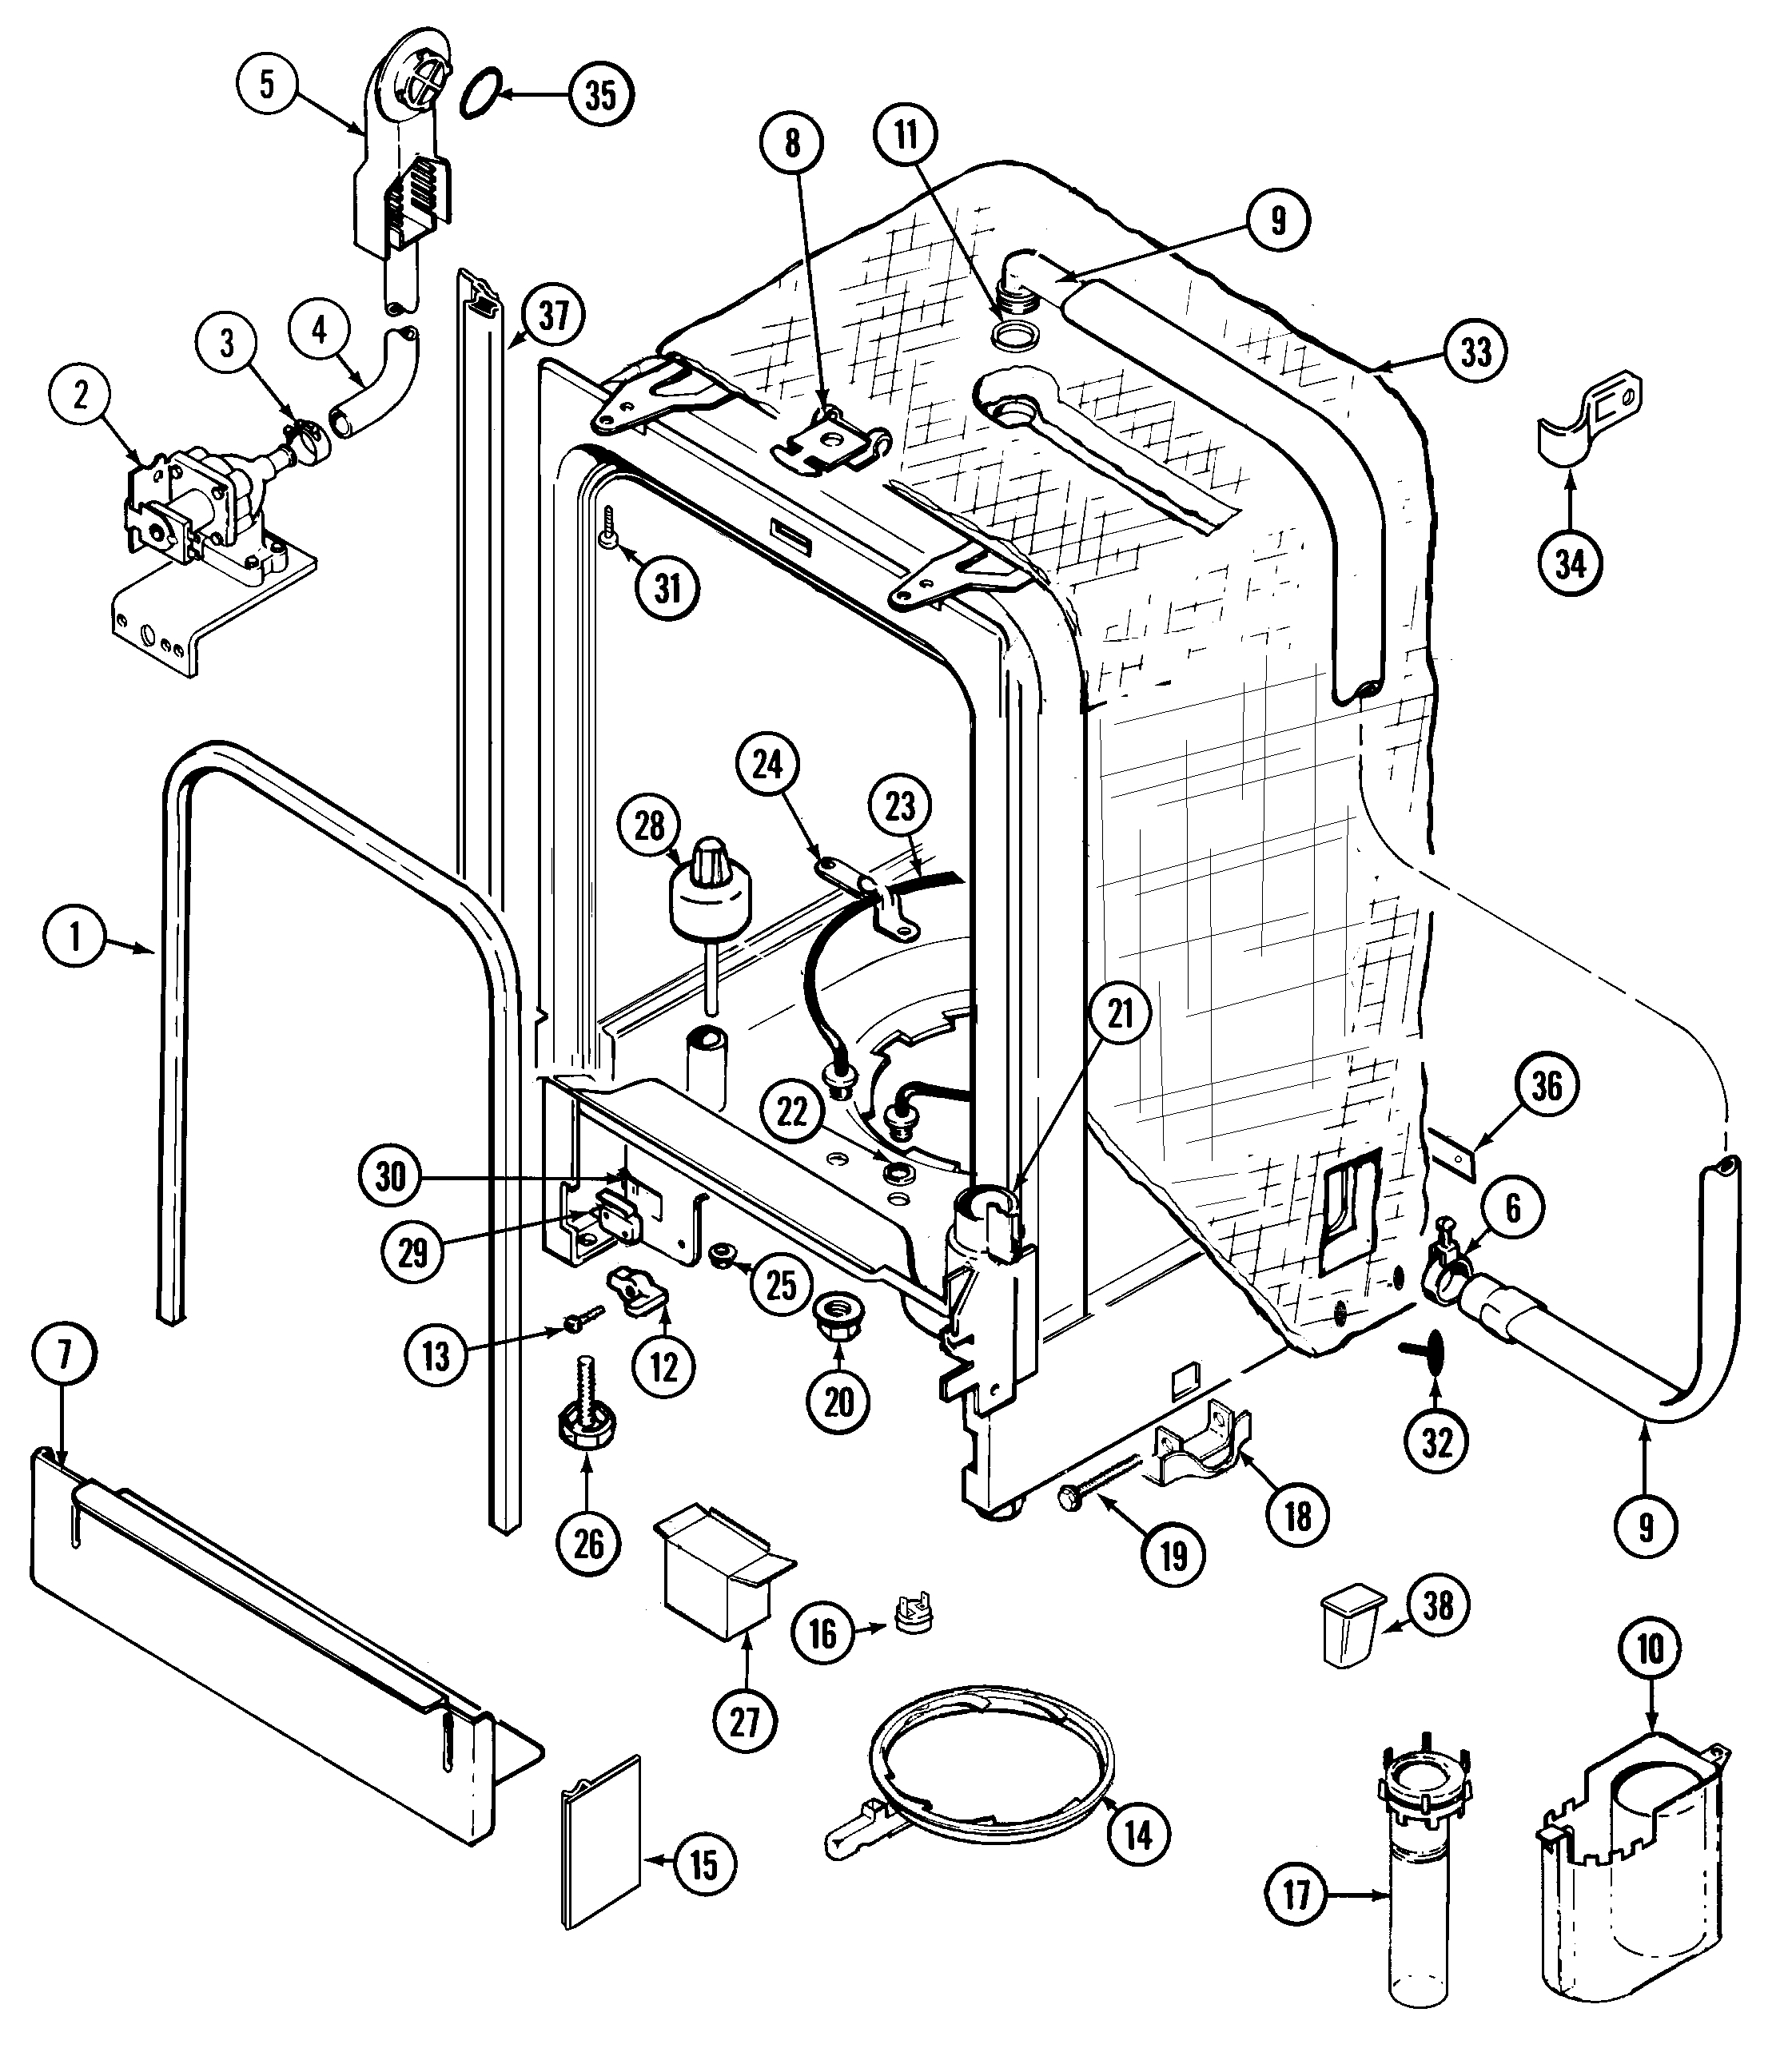 Whirlpool Dishwasher Wiring Diagram